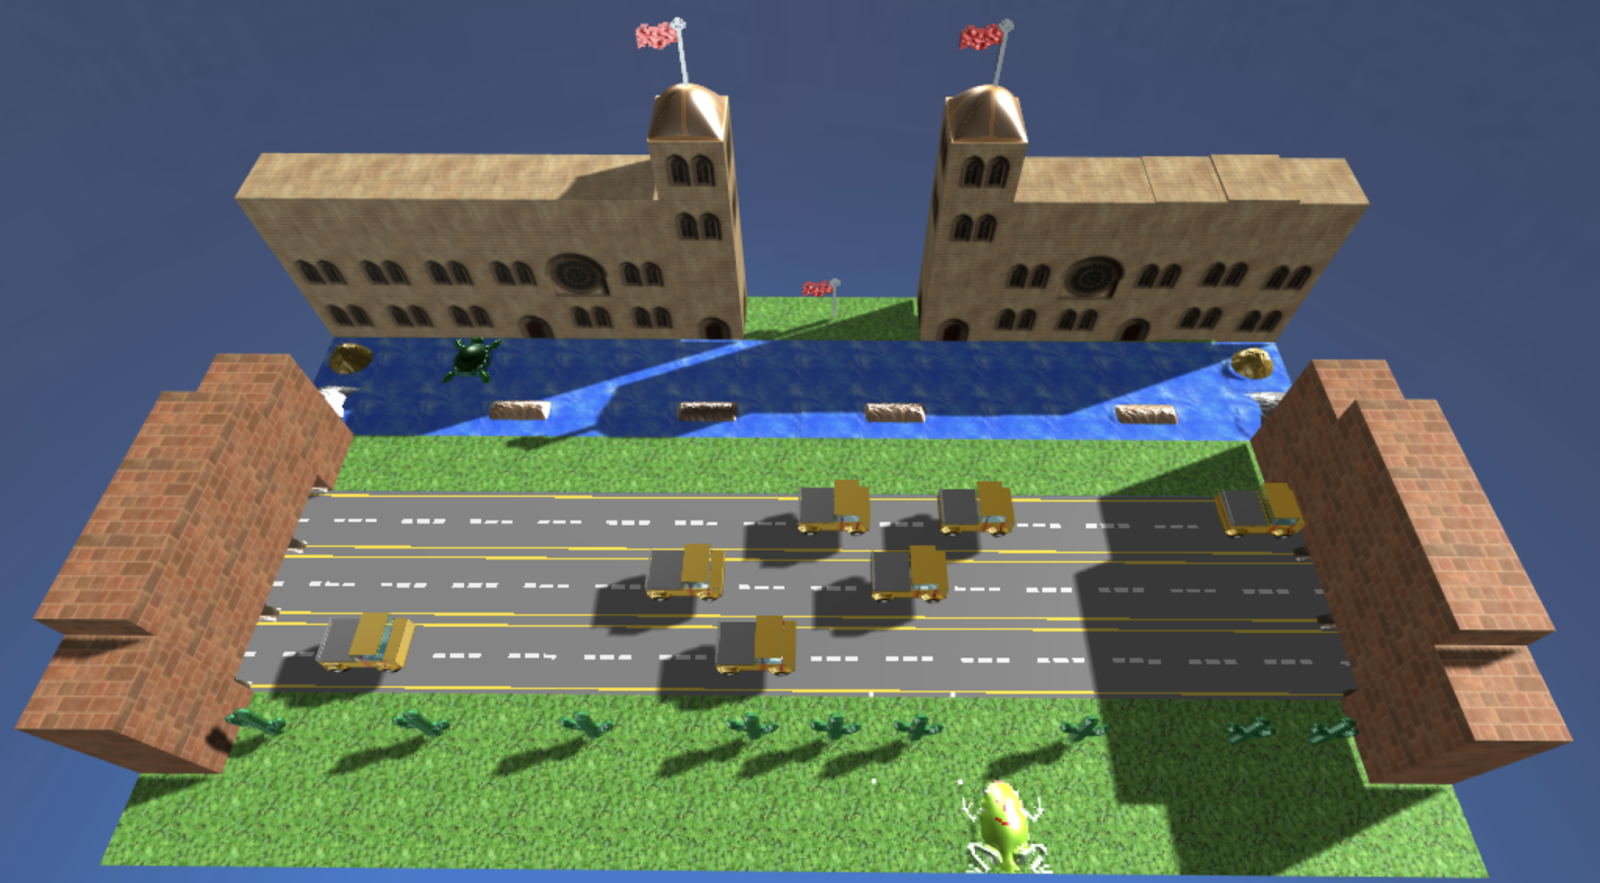 3D frogger game with a castle